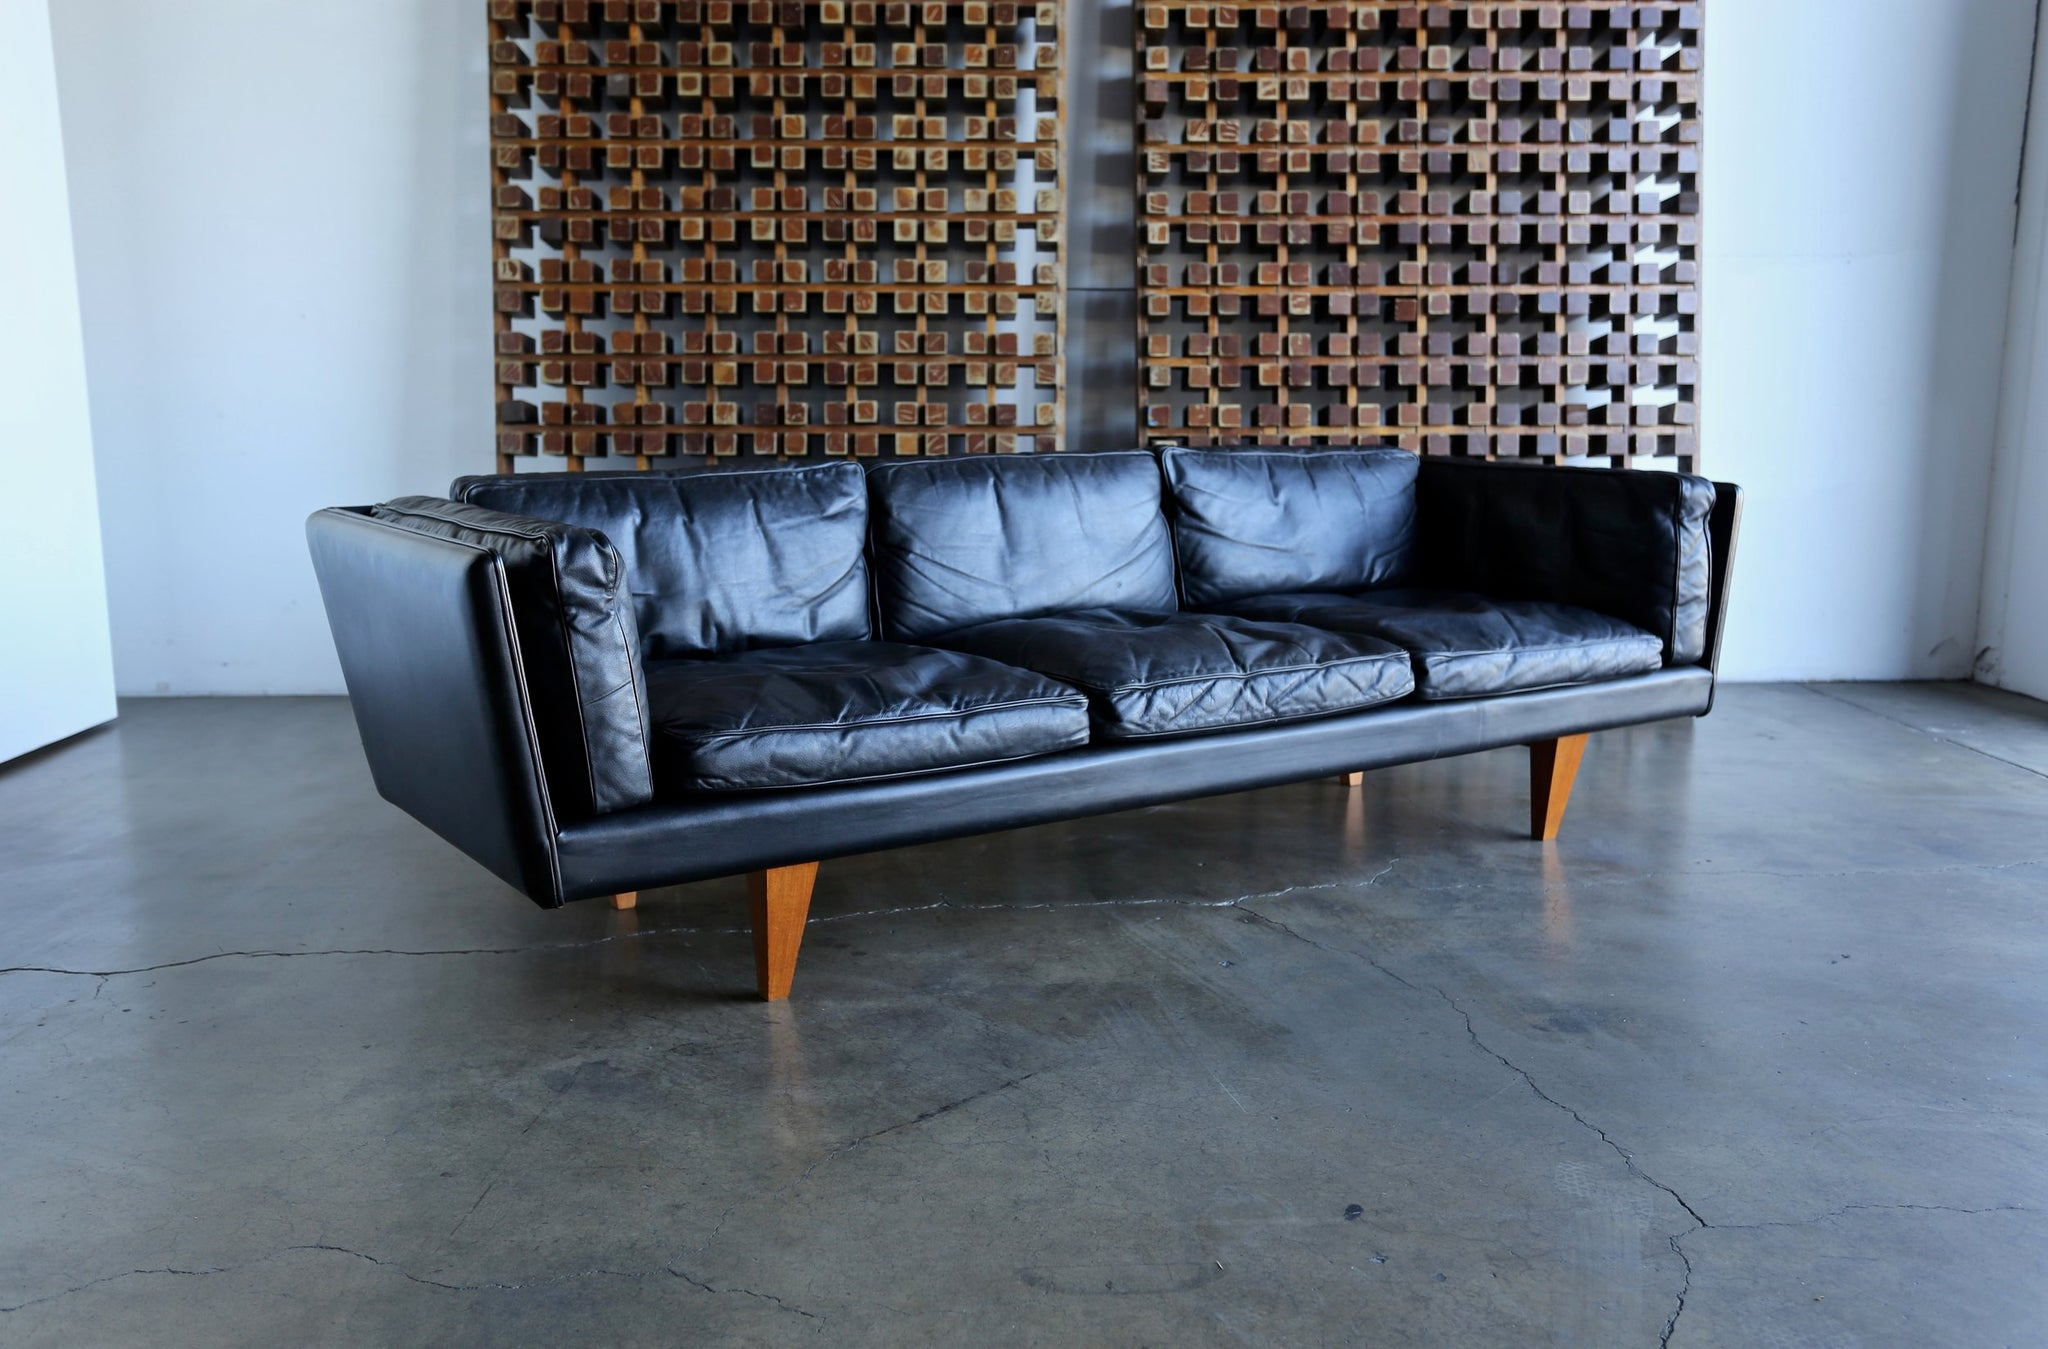 = SOLD = Original Black Leather Sofa by Illum Wikkelsø